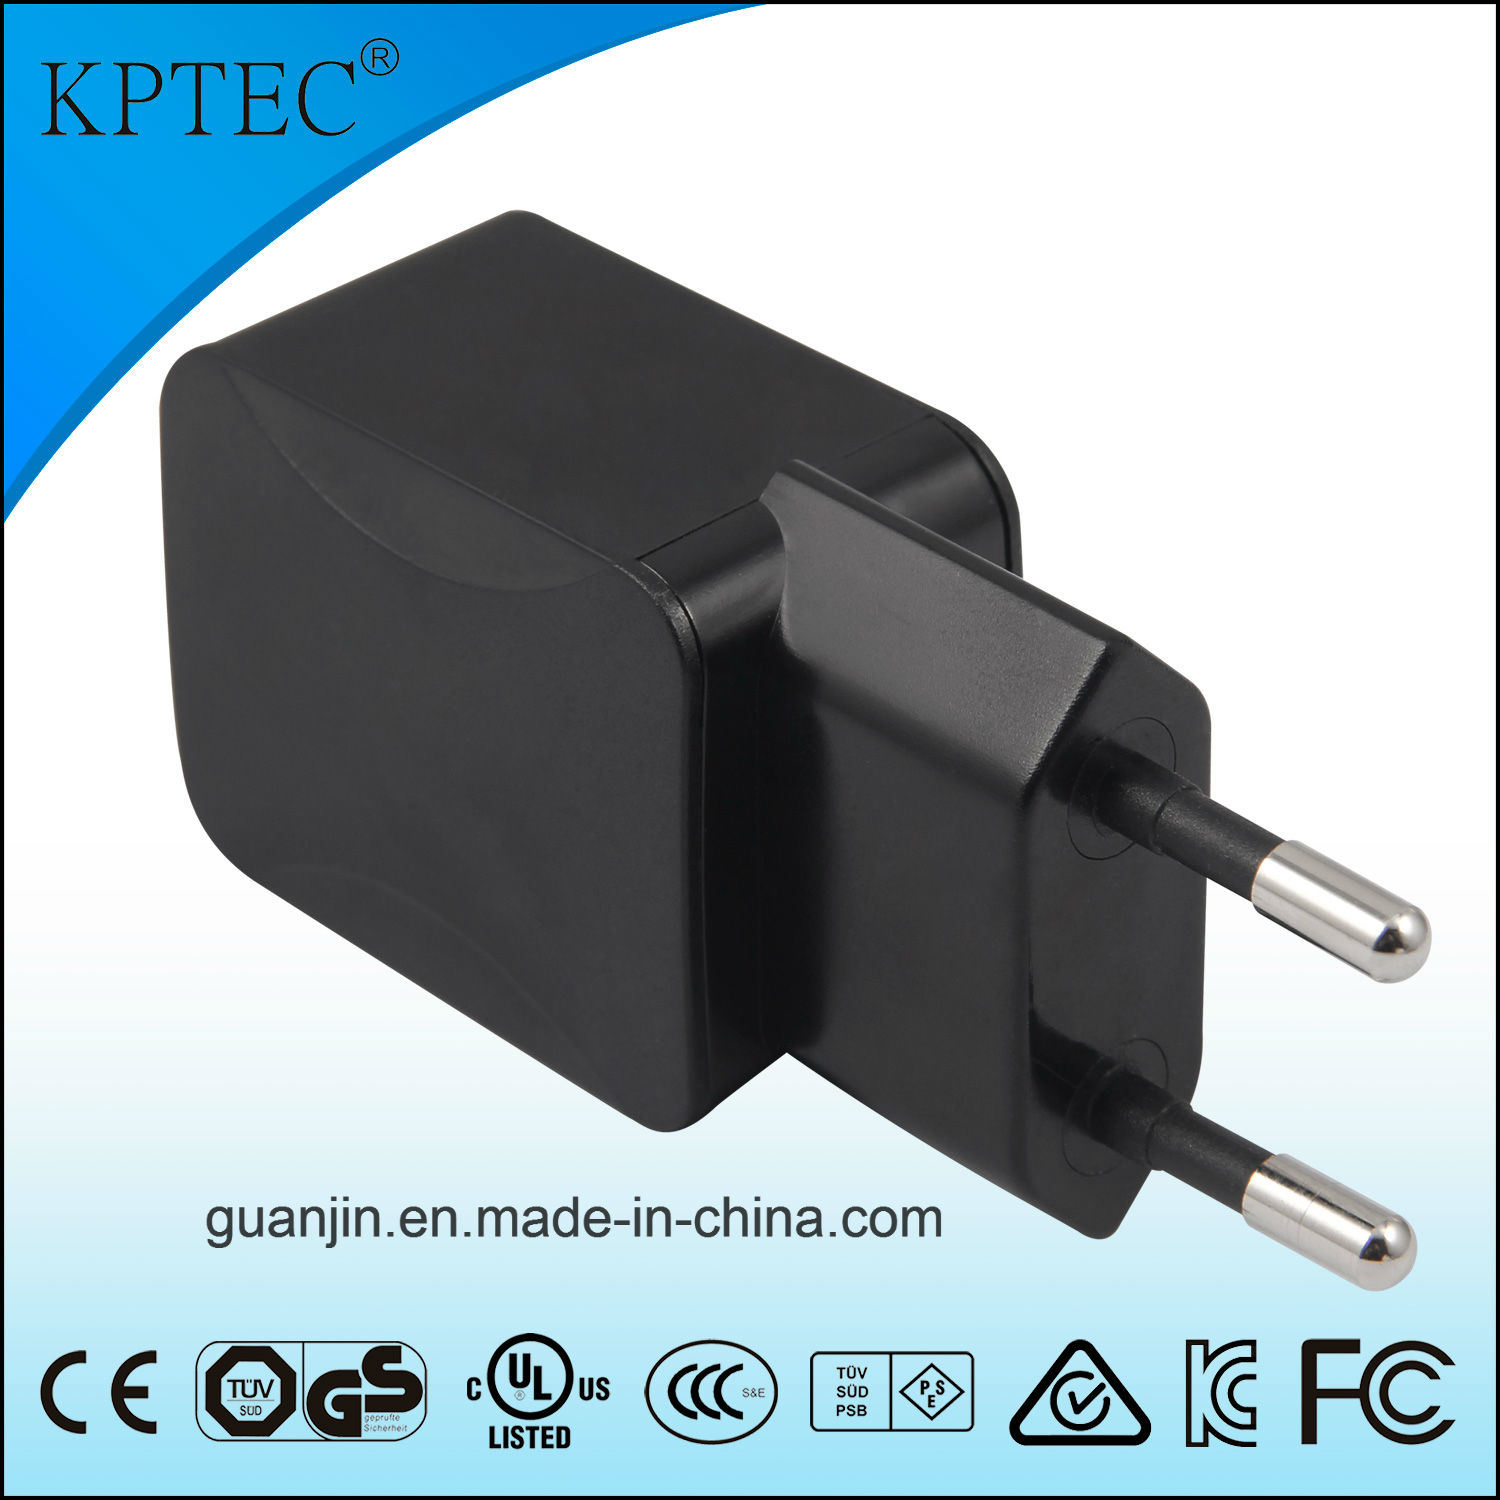 Charger with 5V 1A Ce and GS Certificate